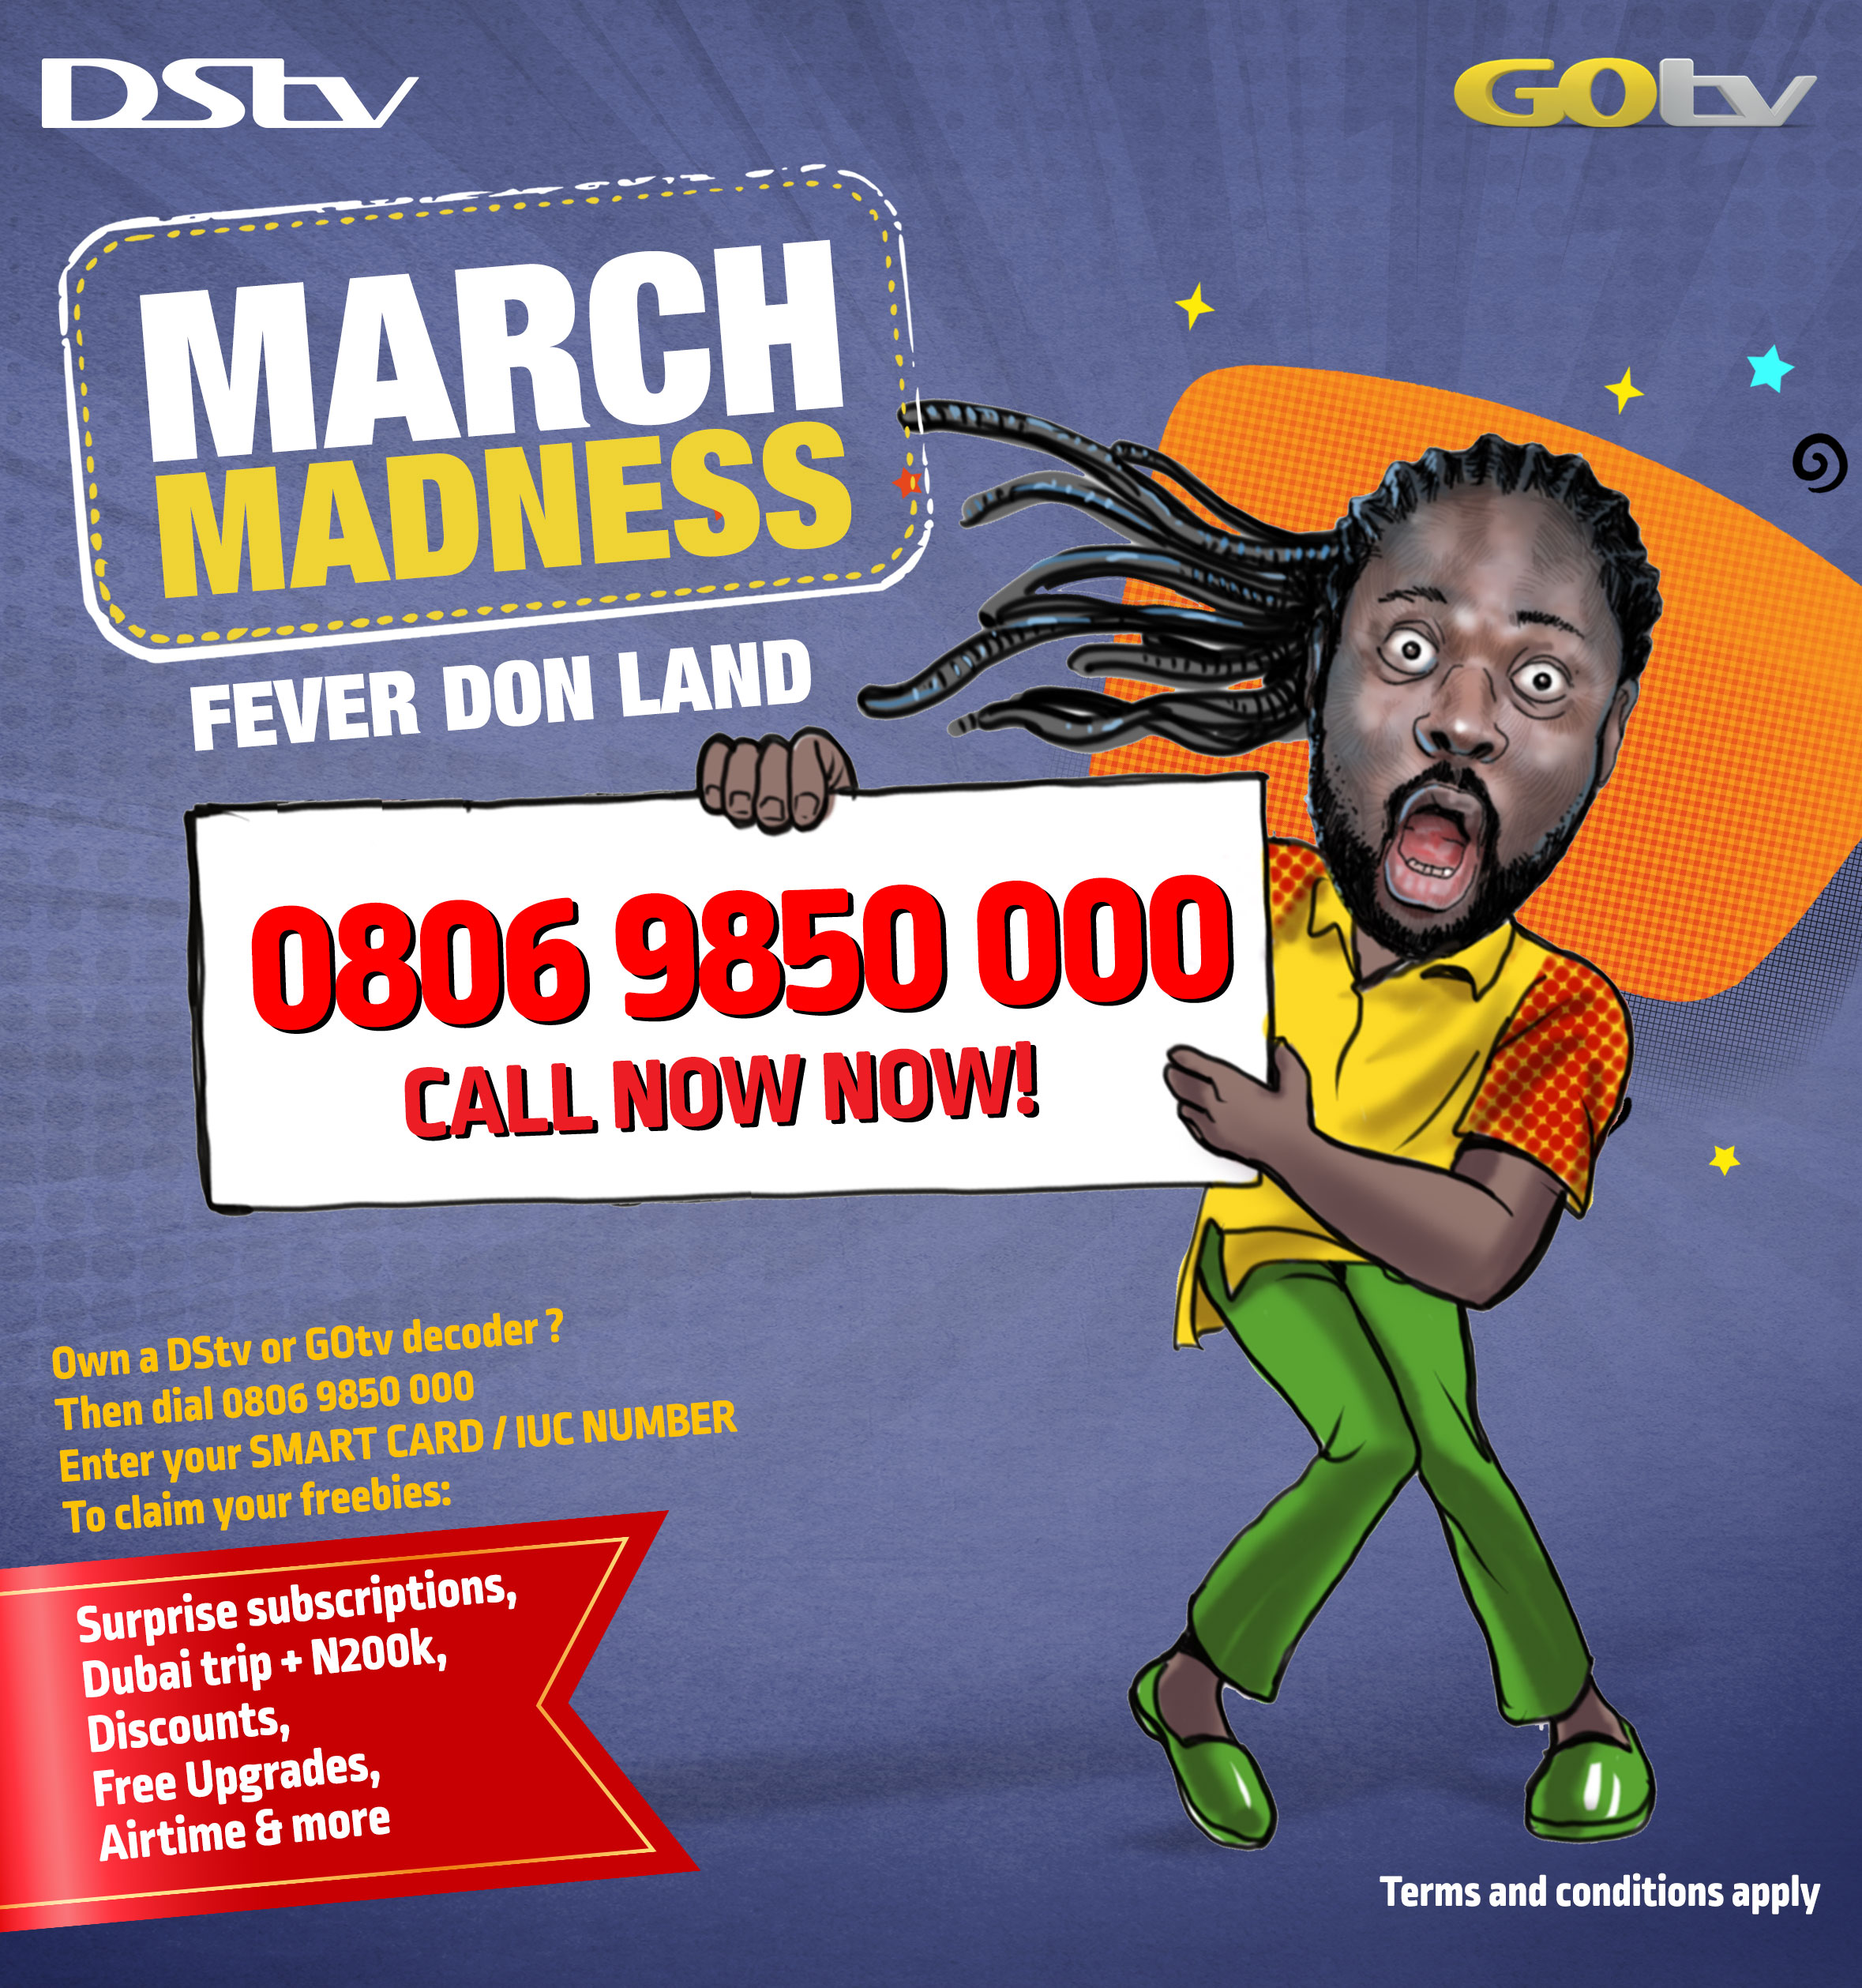 MultiChoice Nigeria Announces March Madness Offer